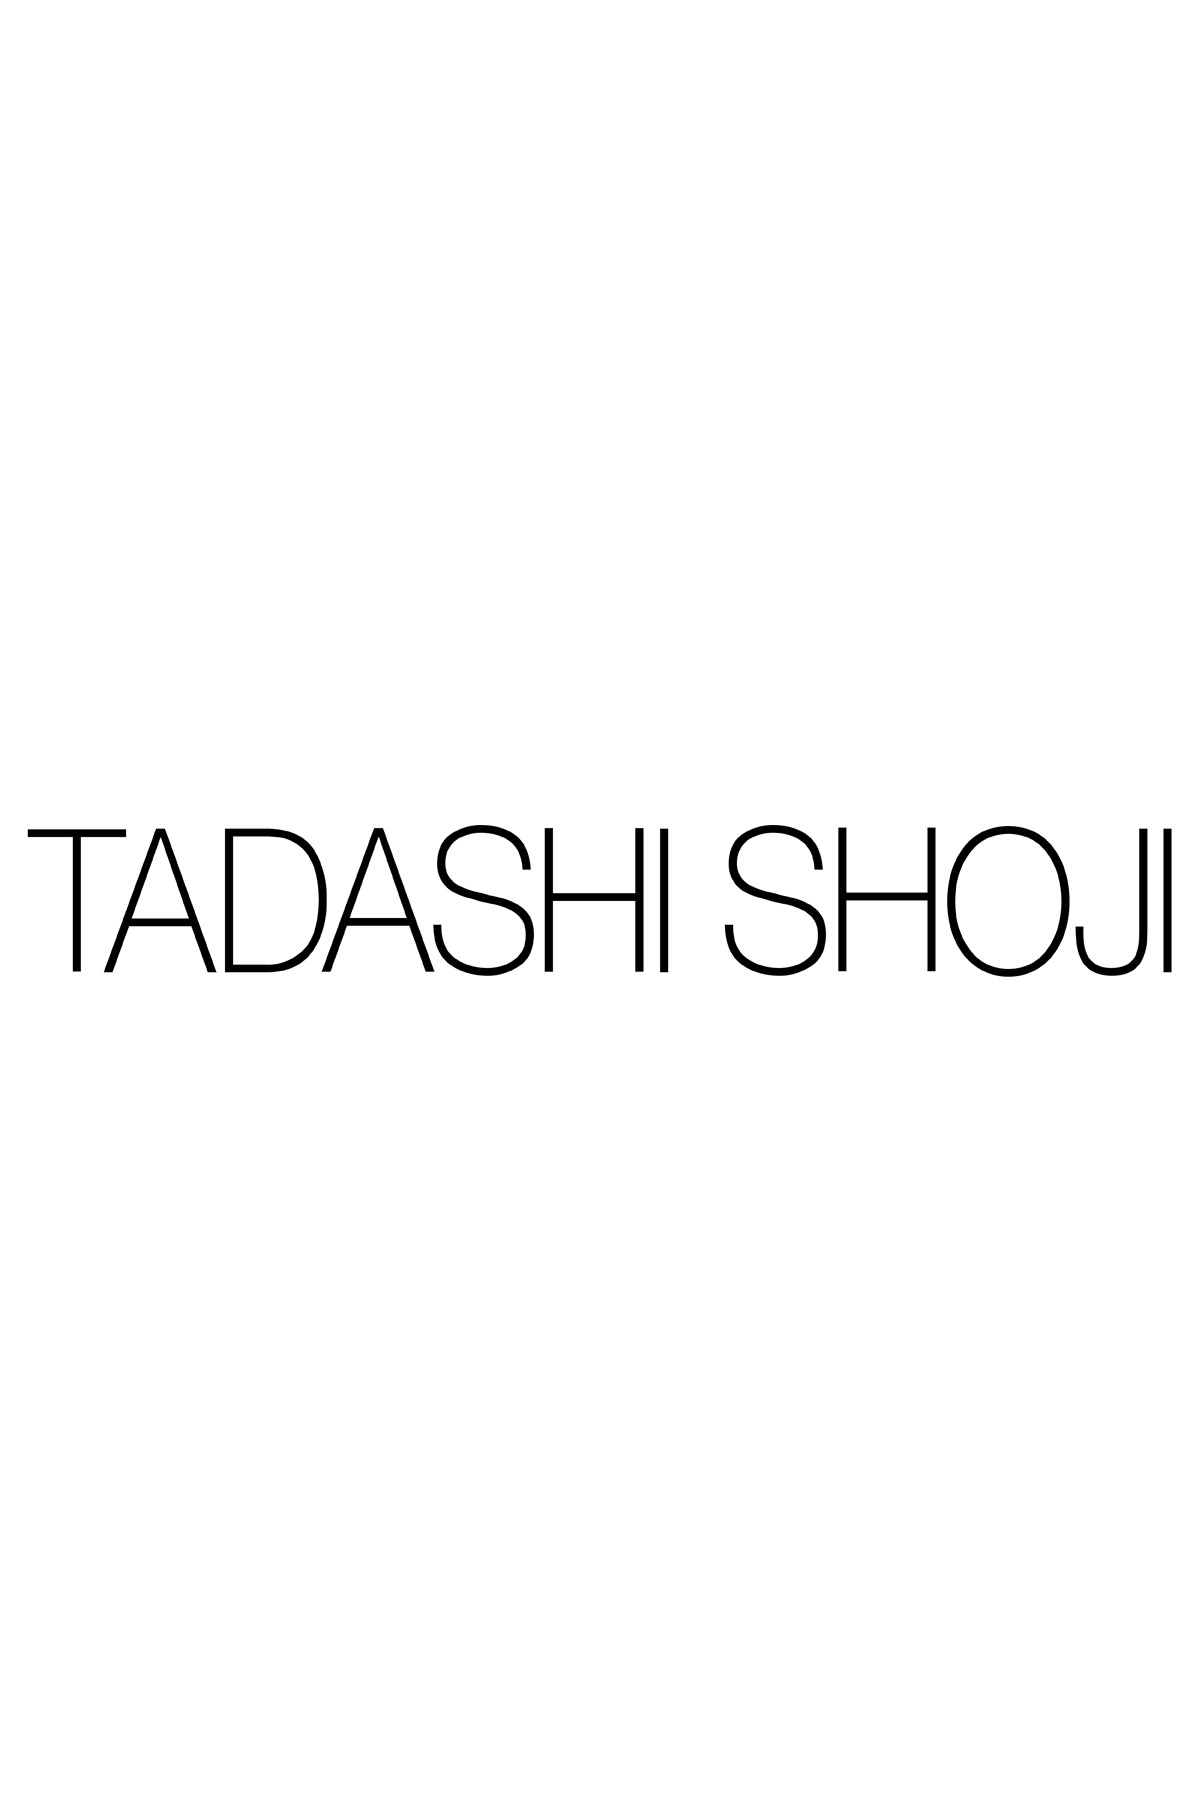 Embroidered Lace V-Neck Dress with Ribbon Detail in Aqua | Tadashi Shoji